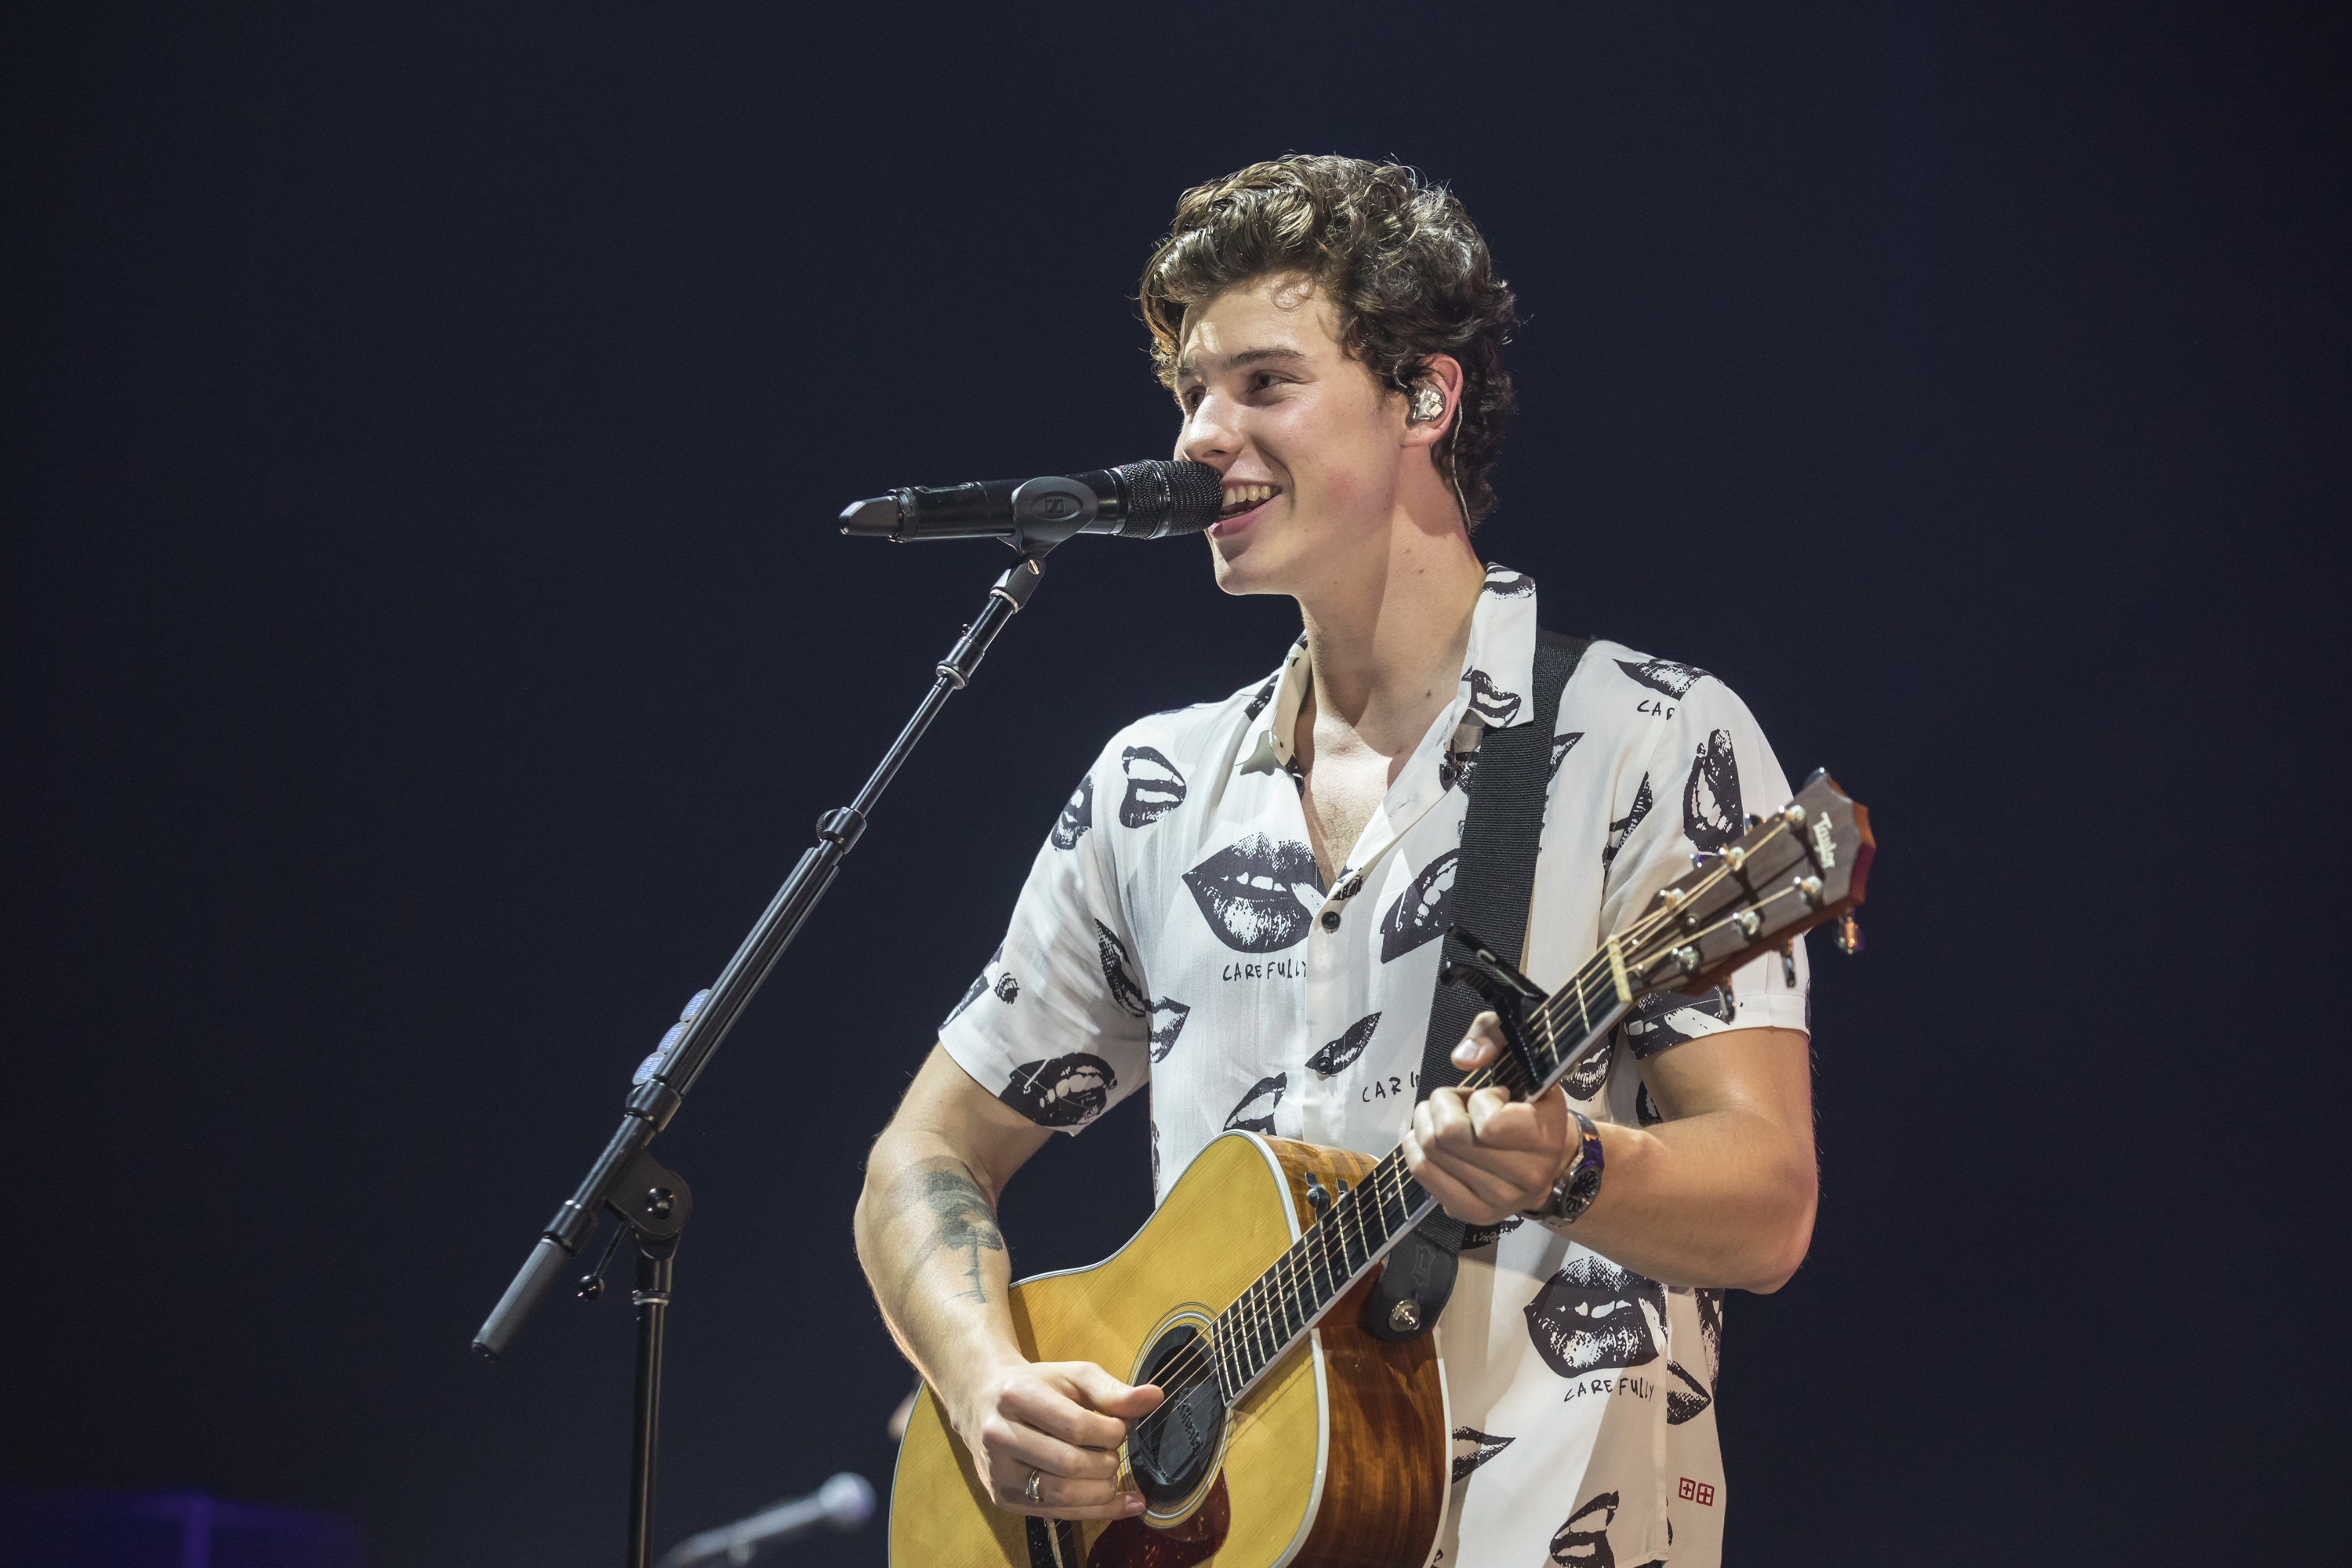 Shawn Mendes Illuminate World Tour 2017 Singapore